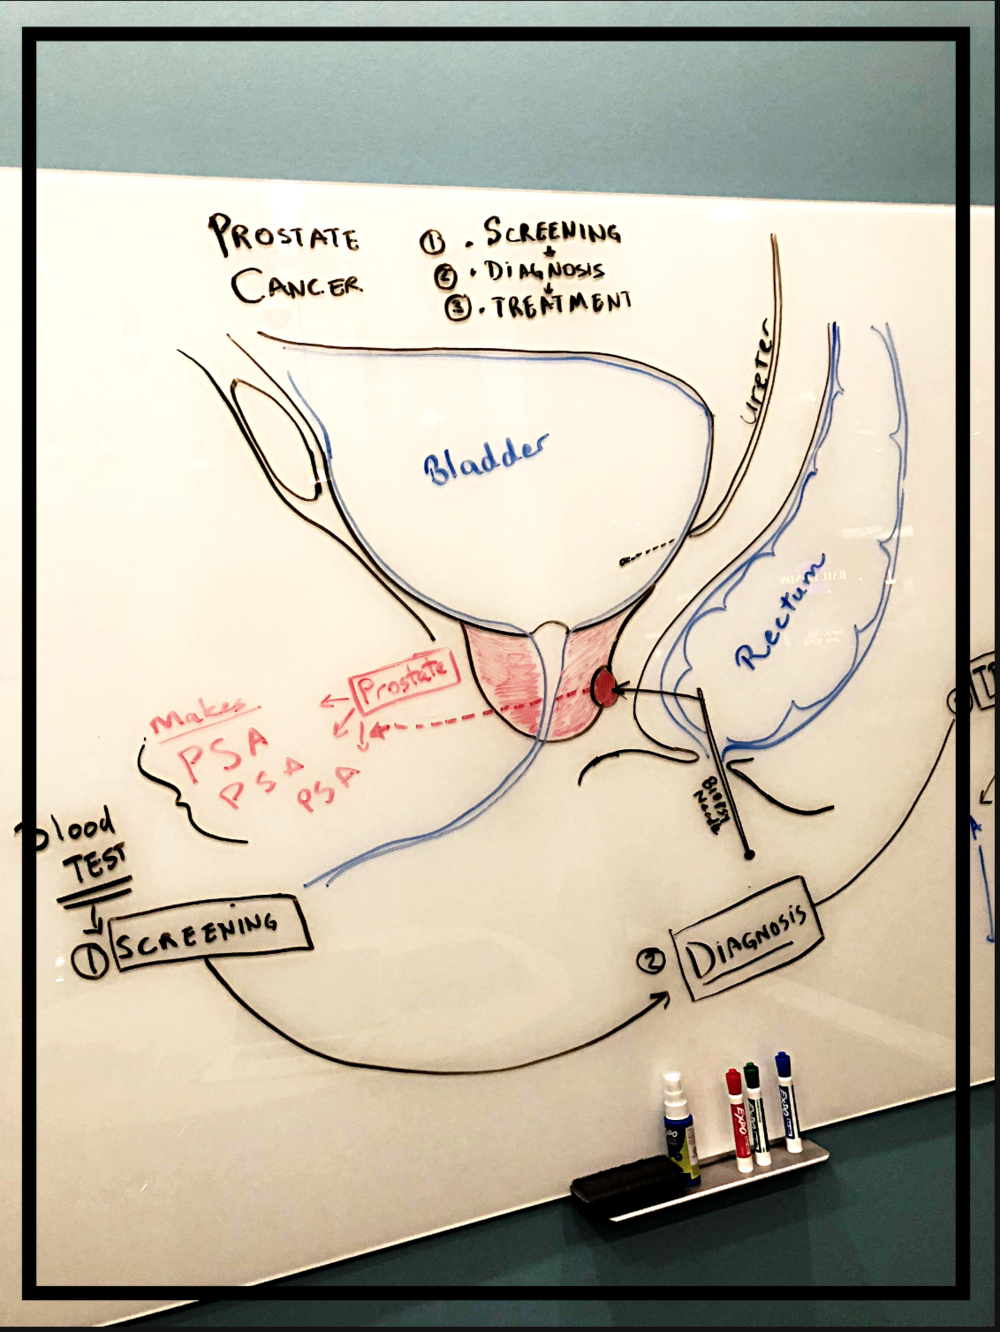 Prostate cancer - illustration of screening, diagnosis and treatment options.     Copyright: Fairbanks Urology, LLC